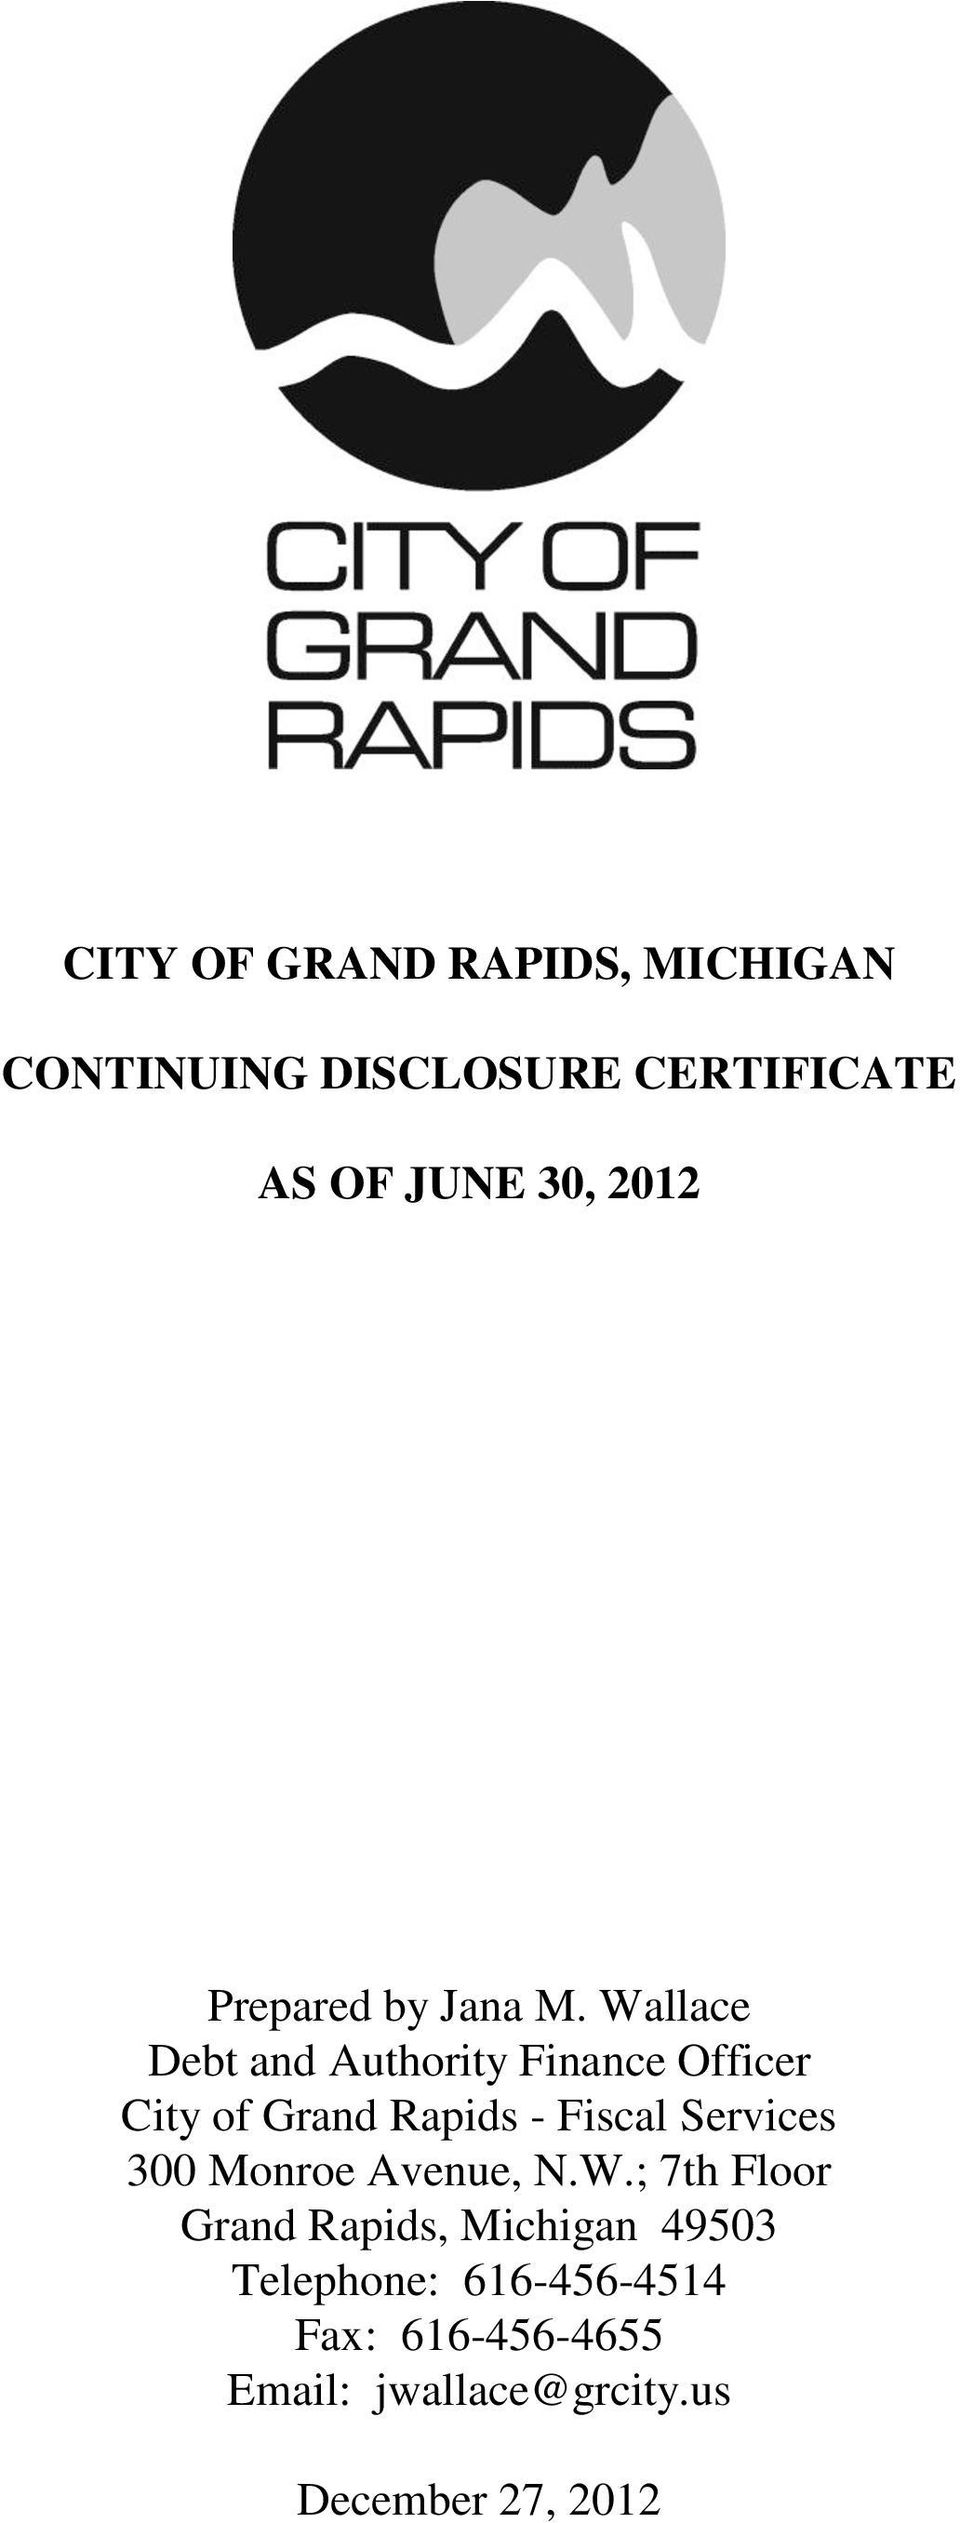 Wallace Debt and Authority Finance Officer City of Grand Rapids - Fiscal Services